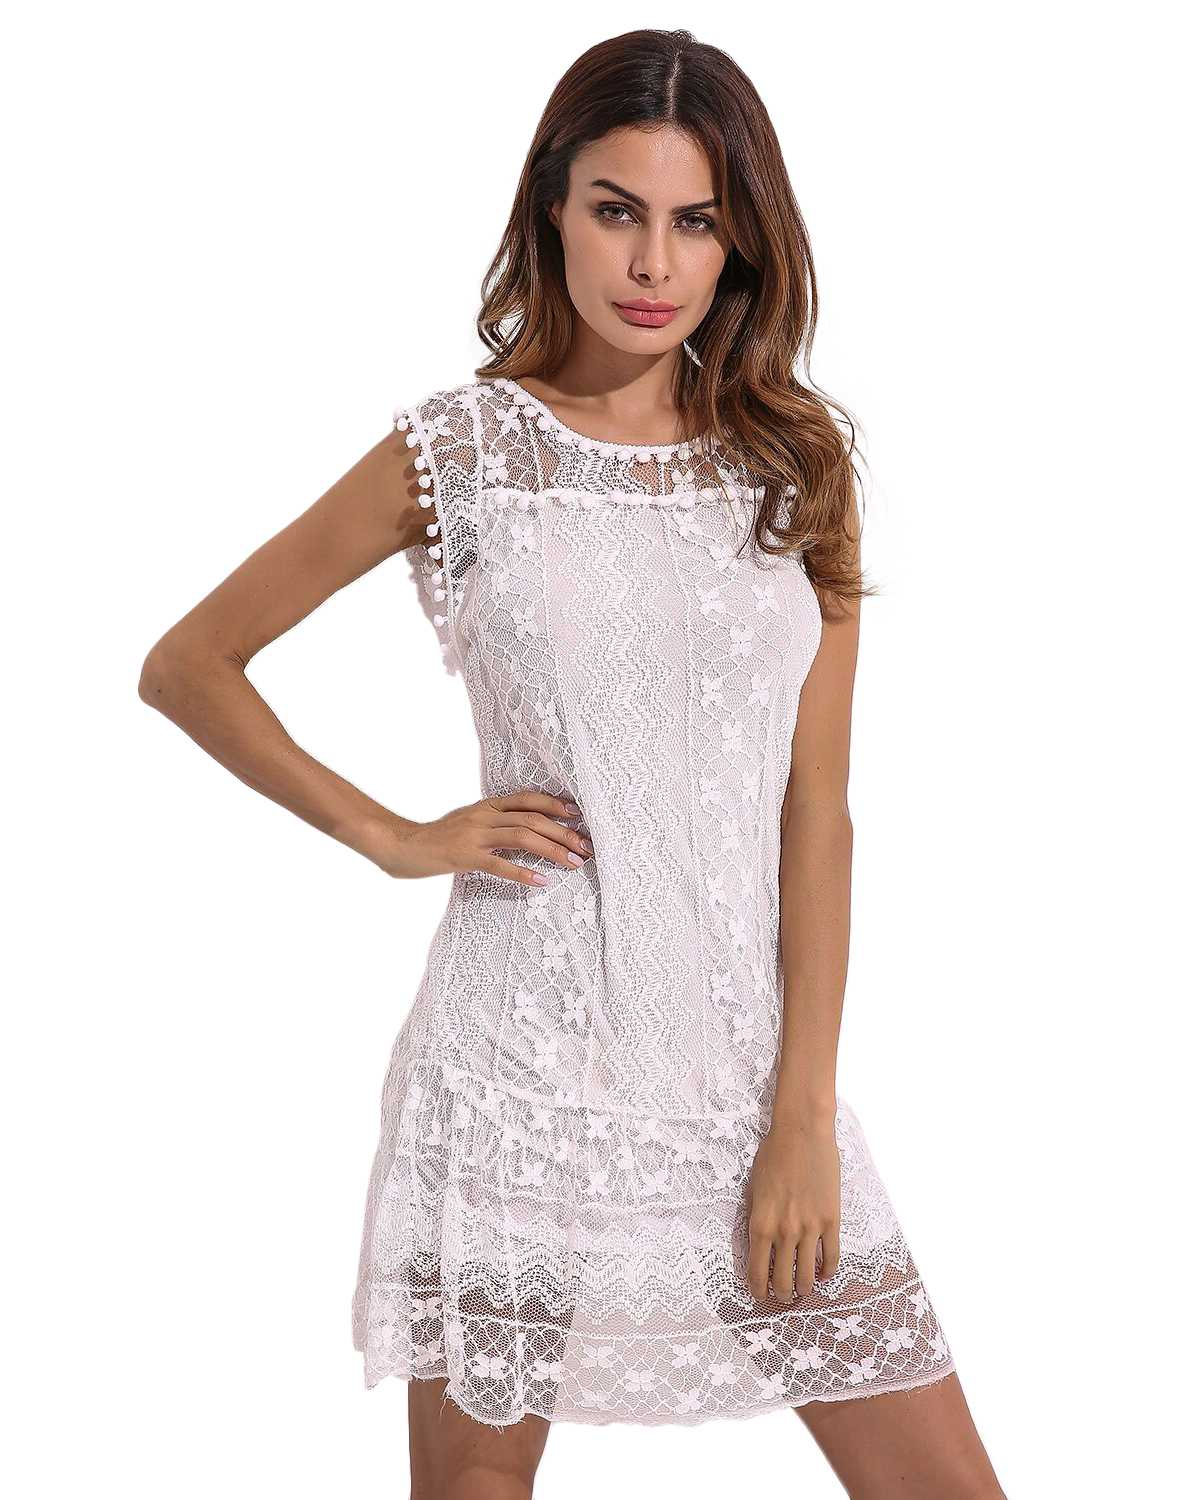 Summer Loose Straight Dresses Women 2019 ZANZEA Casual Round Neck Sleeveless Short Patchwork Lace Elegant Party Robe Mini Dress